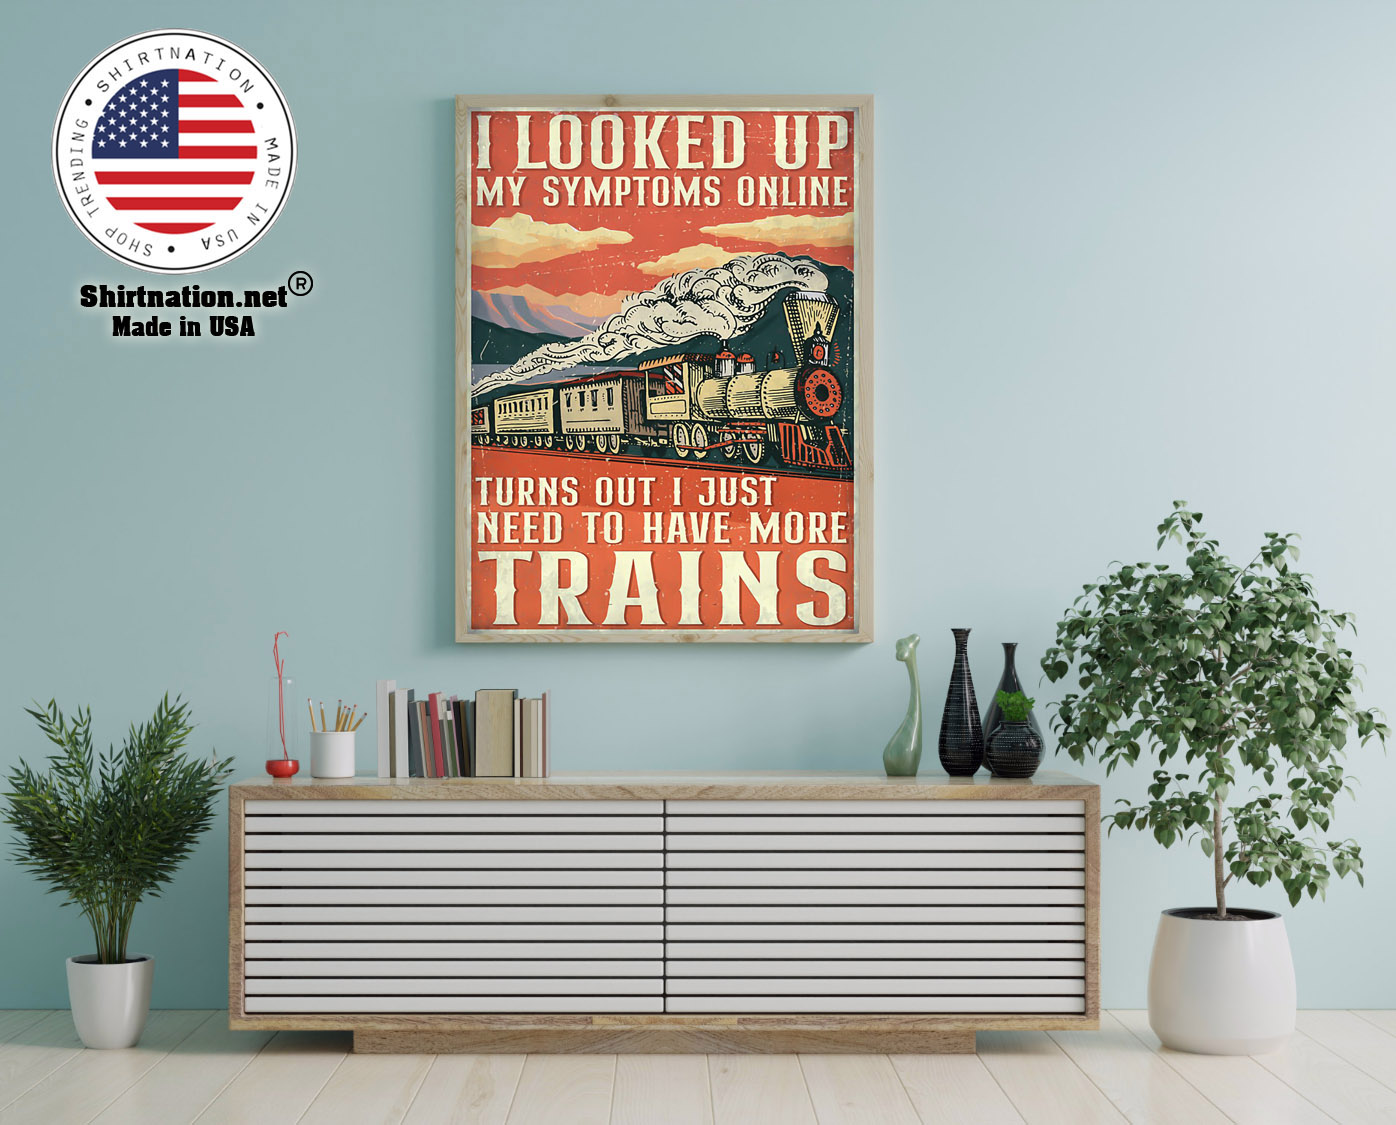 Model railroad looked up my symptoms online poster 12